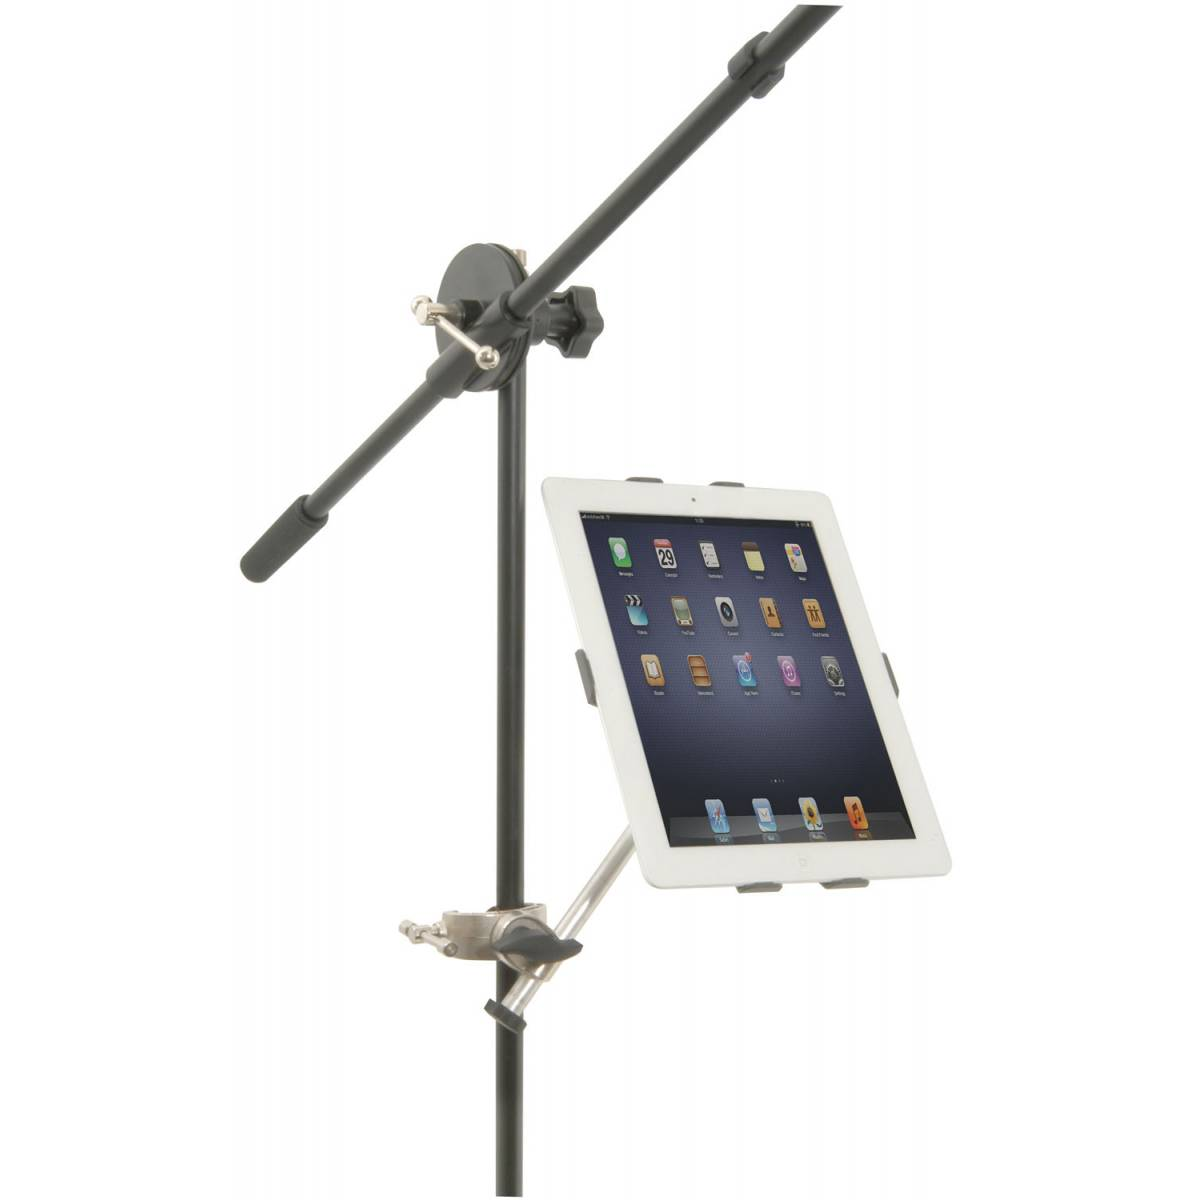 music stand mount for ipad. Black Bedroom Furniture Sets. Home Design Ideas